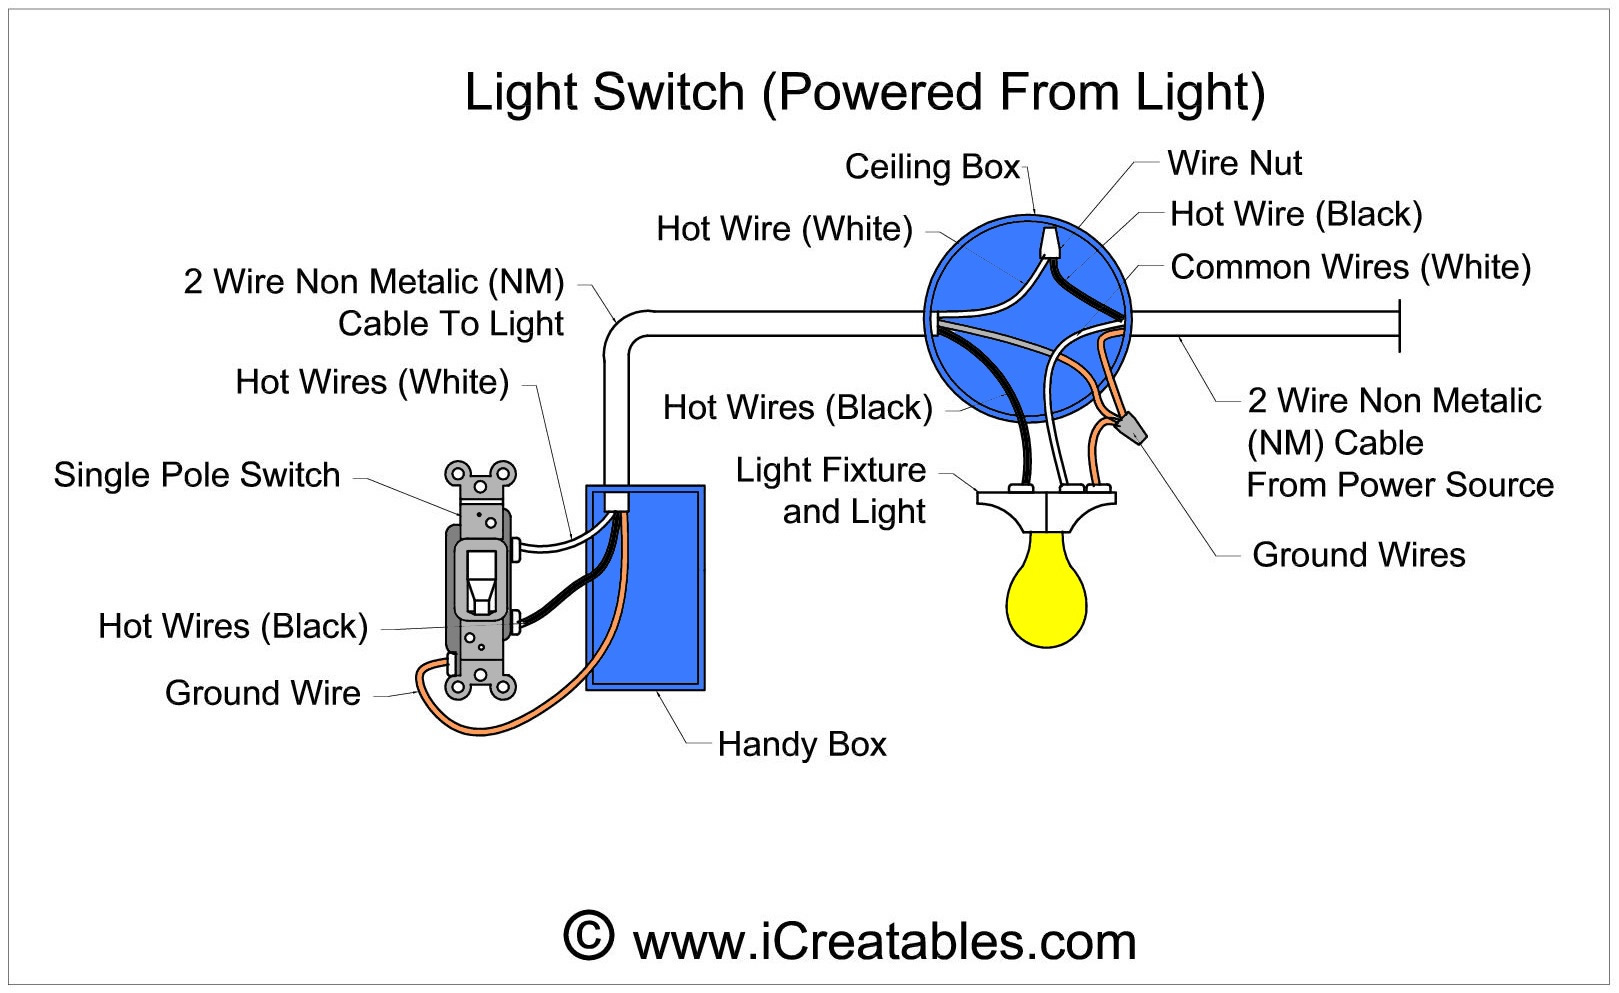 House Wiring Series Of Lights Auto Electrical Diagram Christmas Light 3 Wire Additionally 1998 Toyota Corolla Watch And Learn How To Replace A Switch